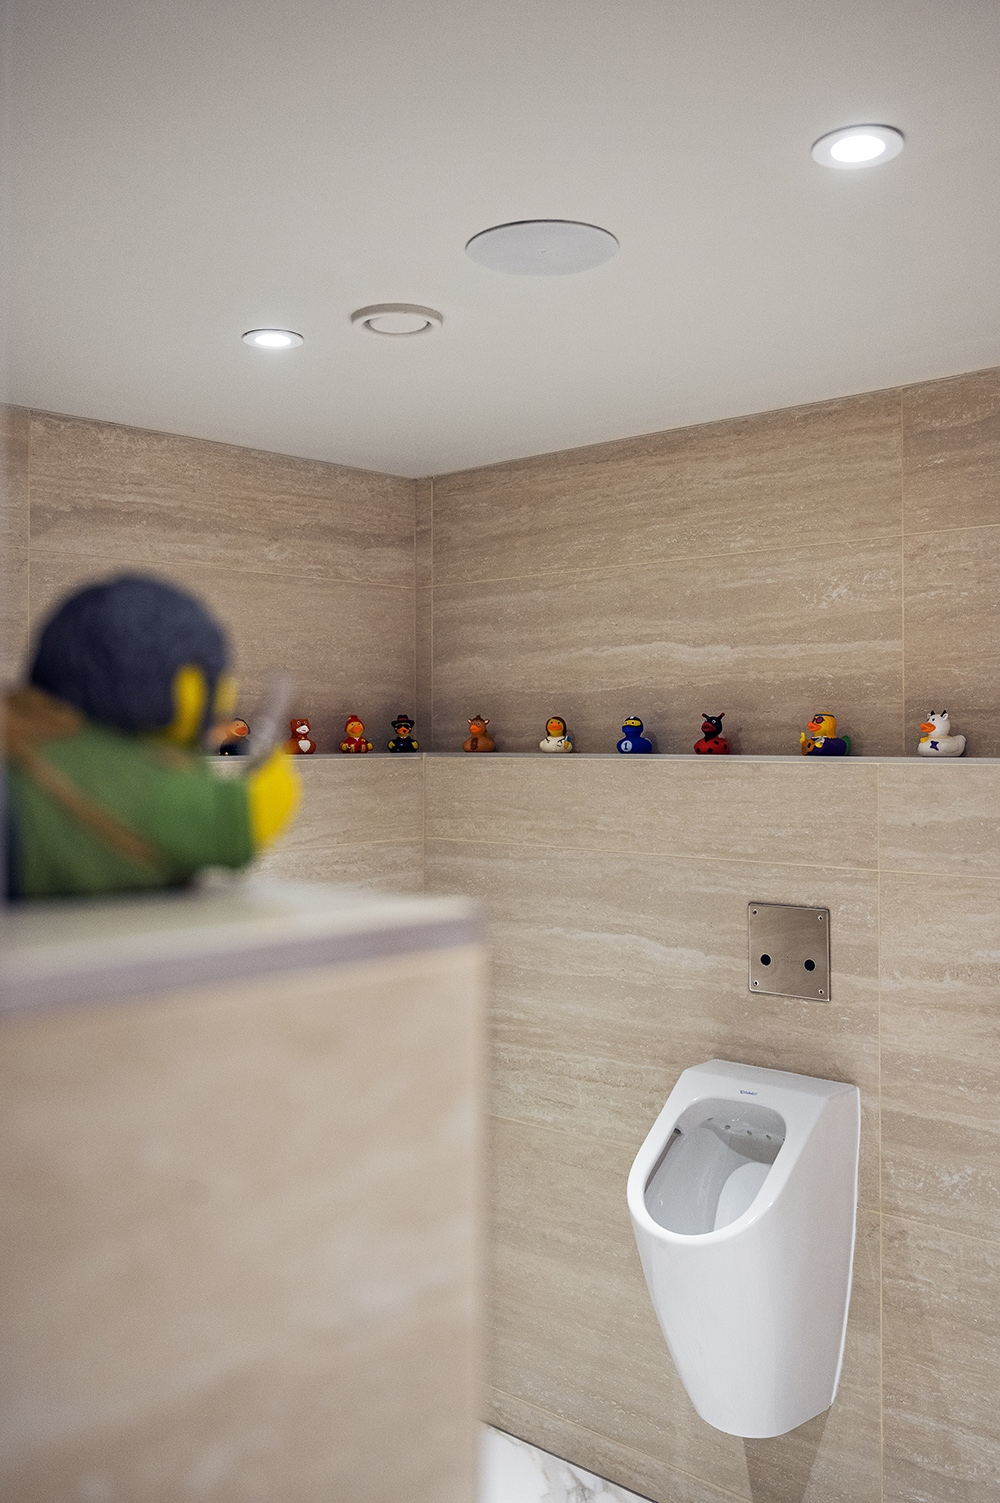 In addition to artwork, gags such as the bathing duck exhibit in the men's bathroom are also shown